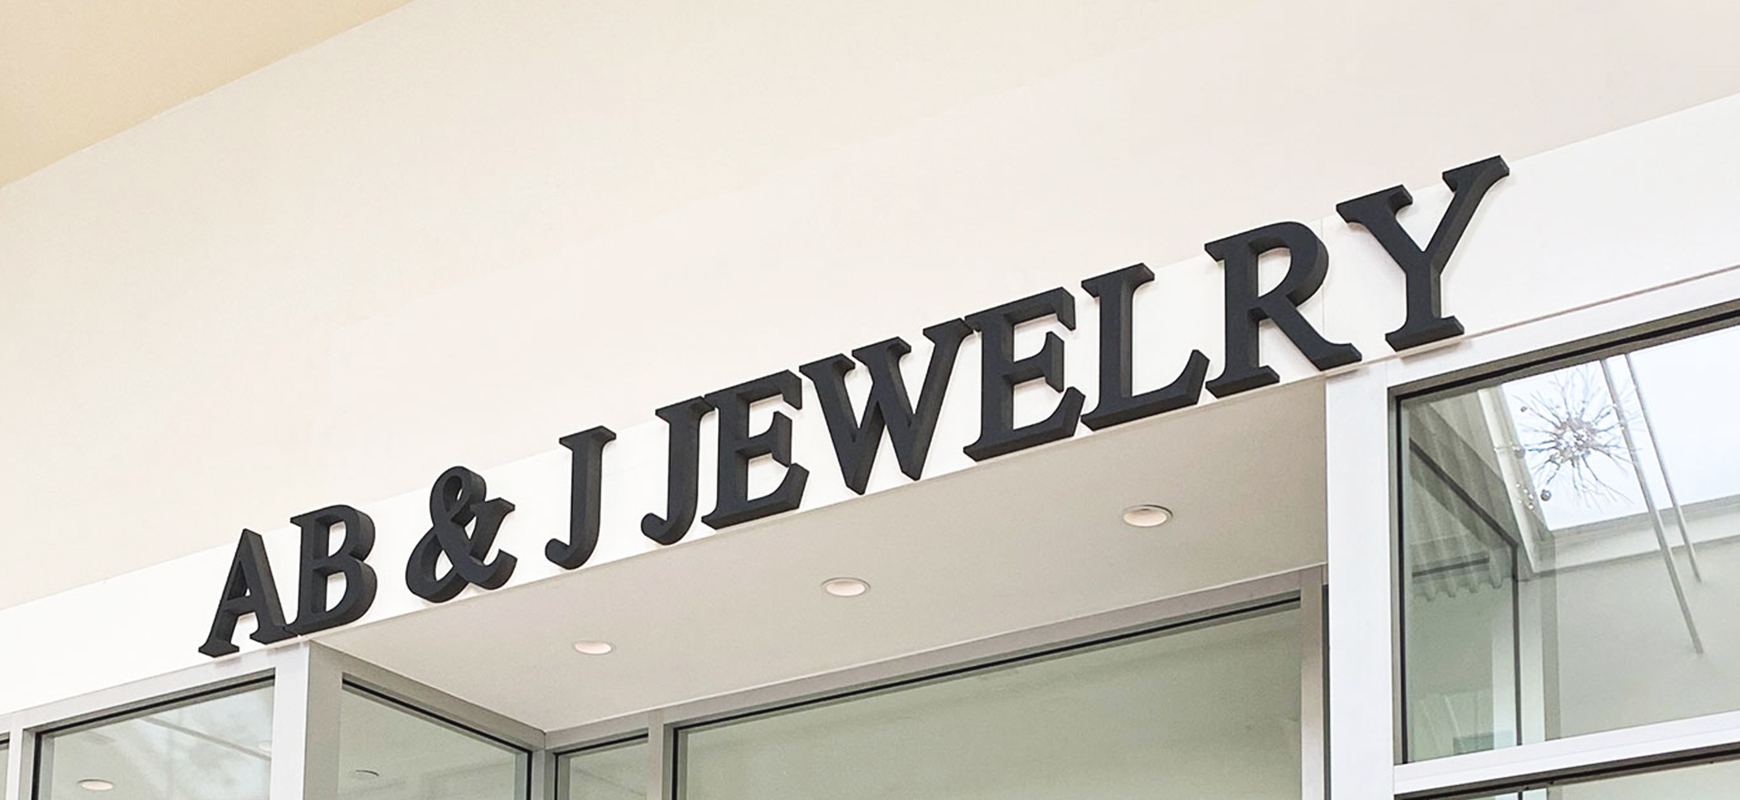 Ab & J Jewelry foam board sign with brand name 3d letters for storefront branding